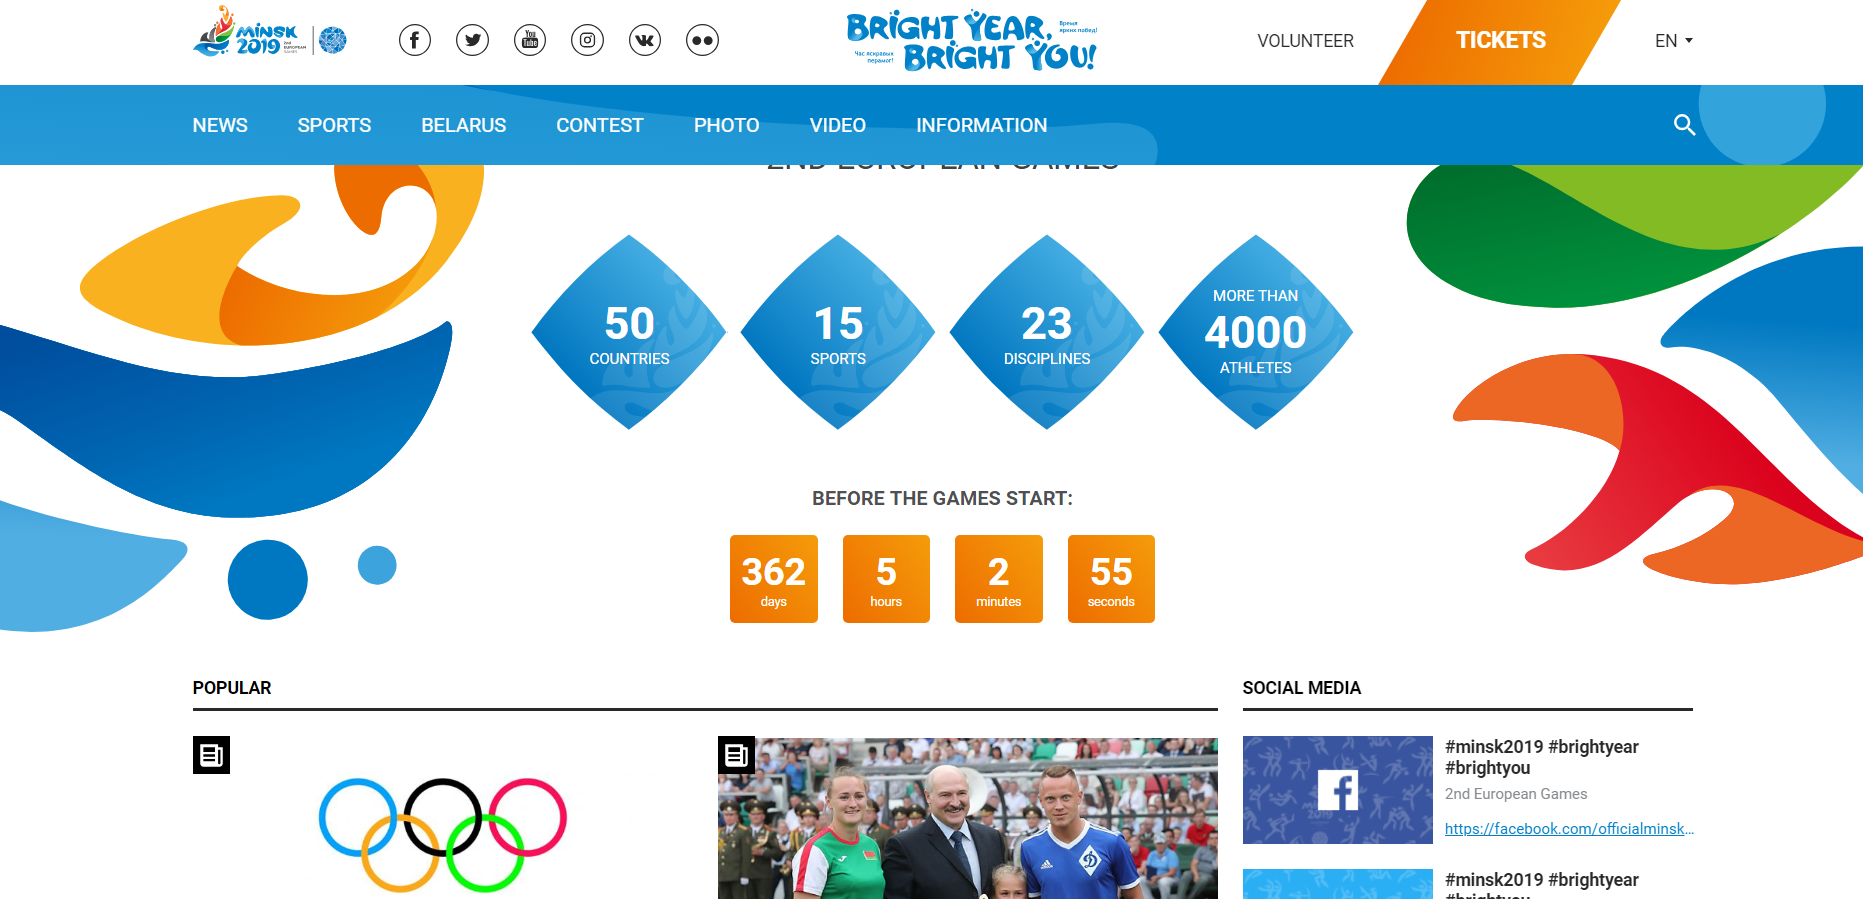 Minsk 2019 have re-designed their website to mark one year to go until the second edition of the European Games ©Minsk 2019